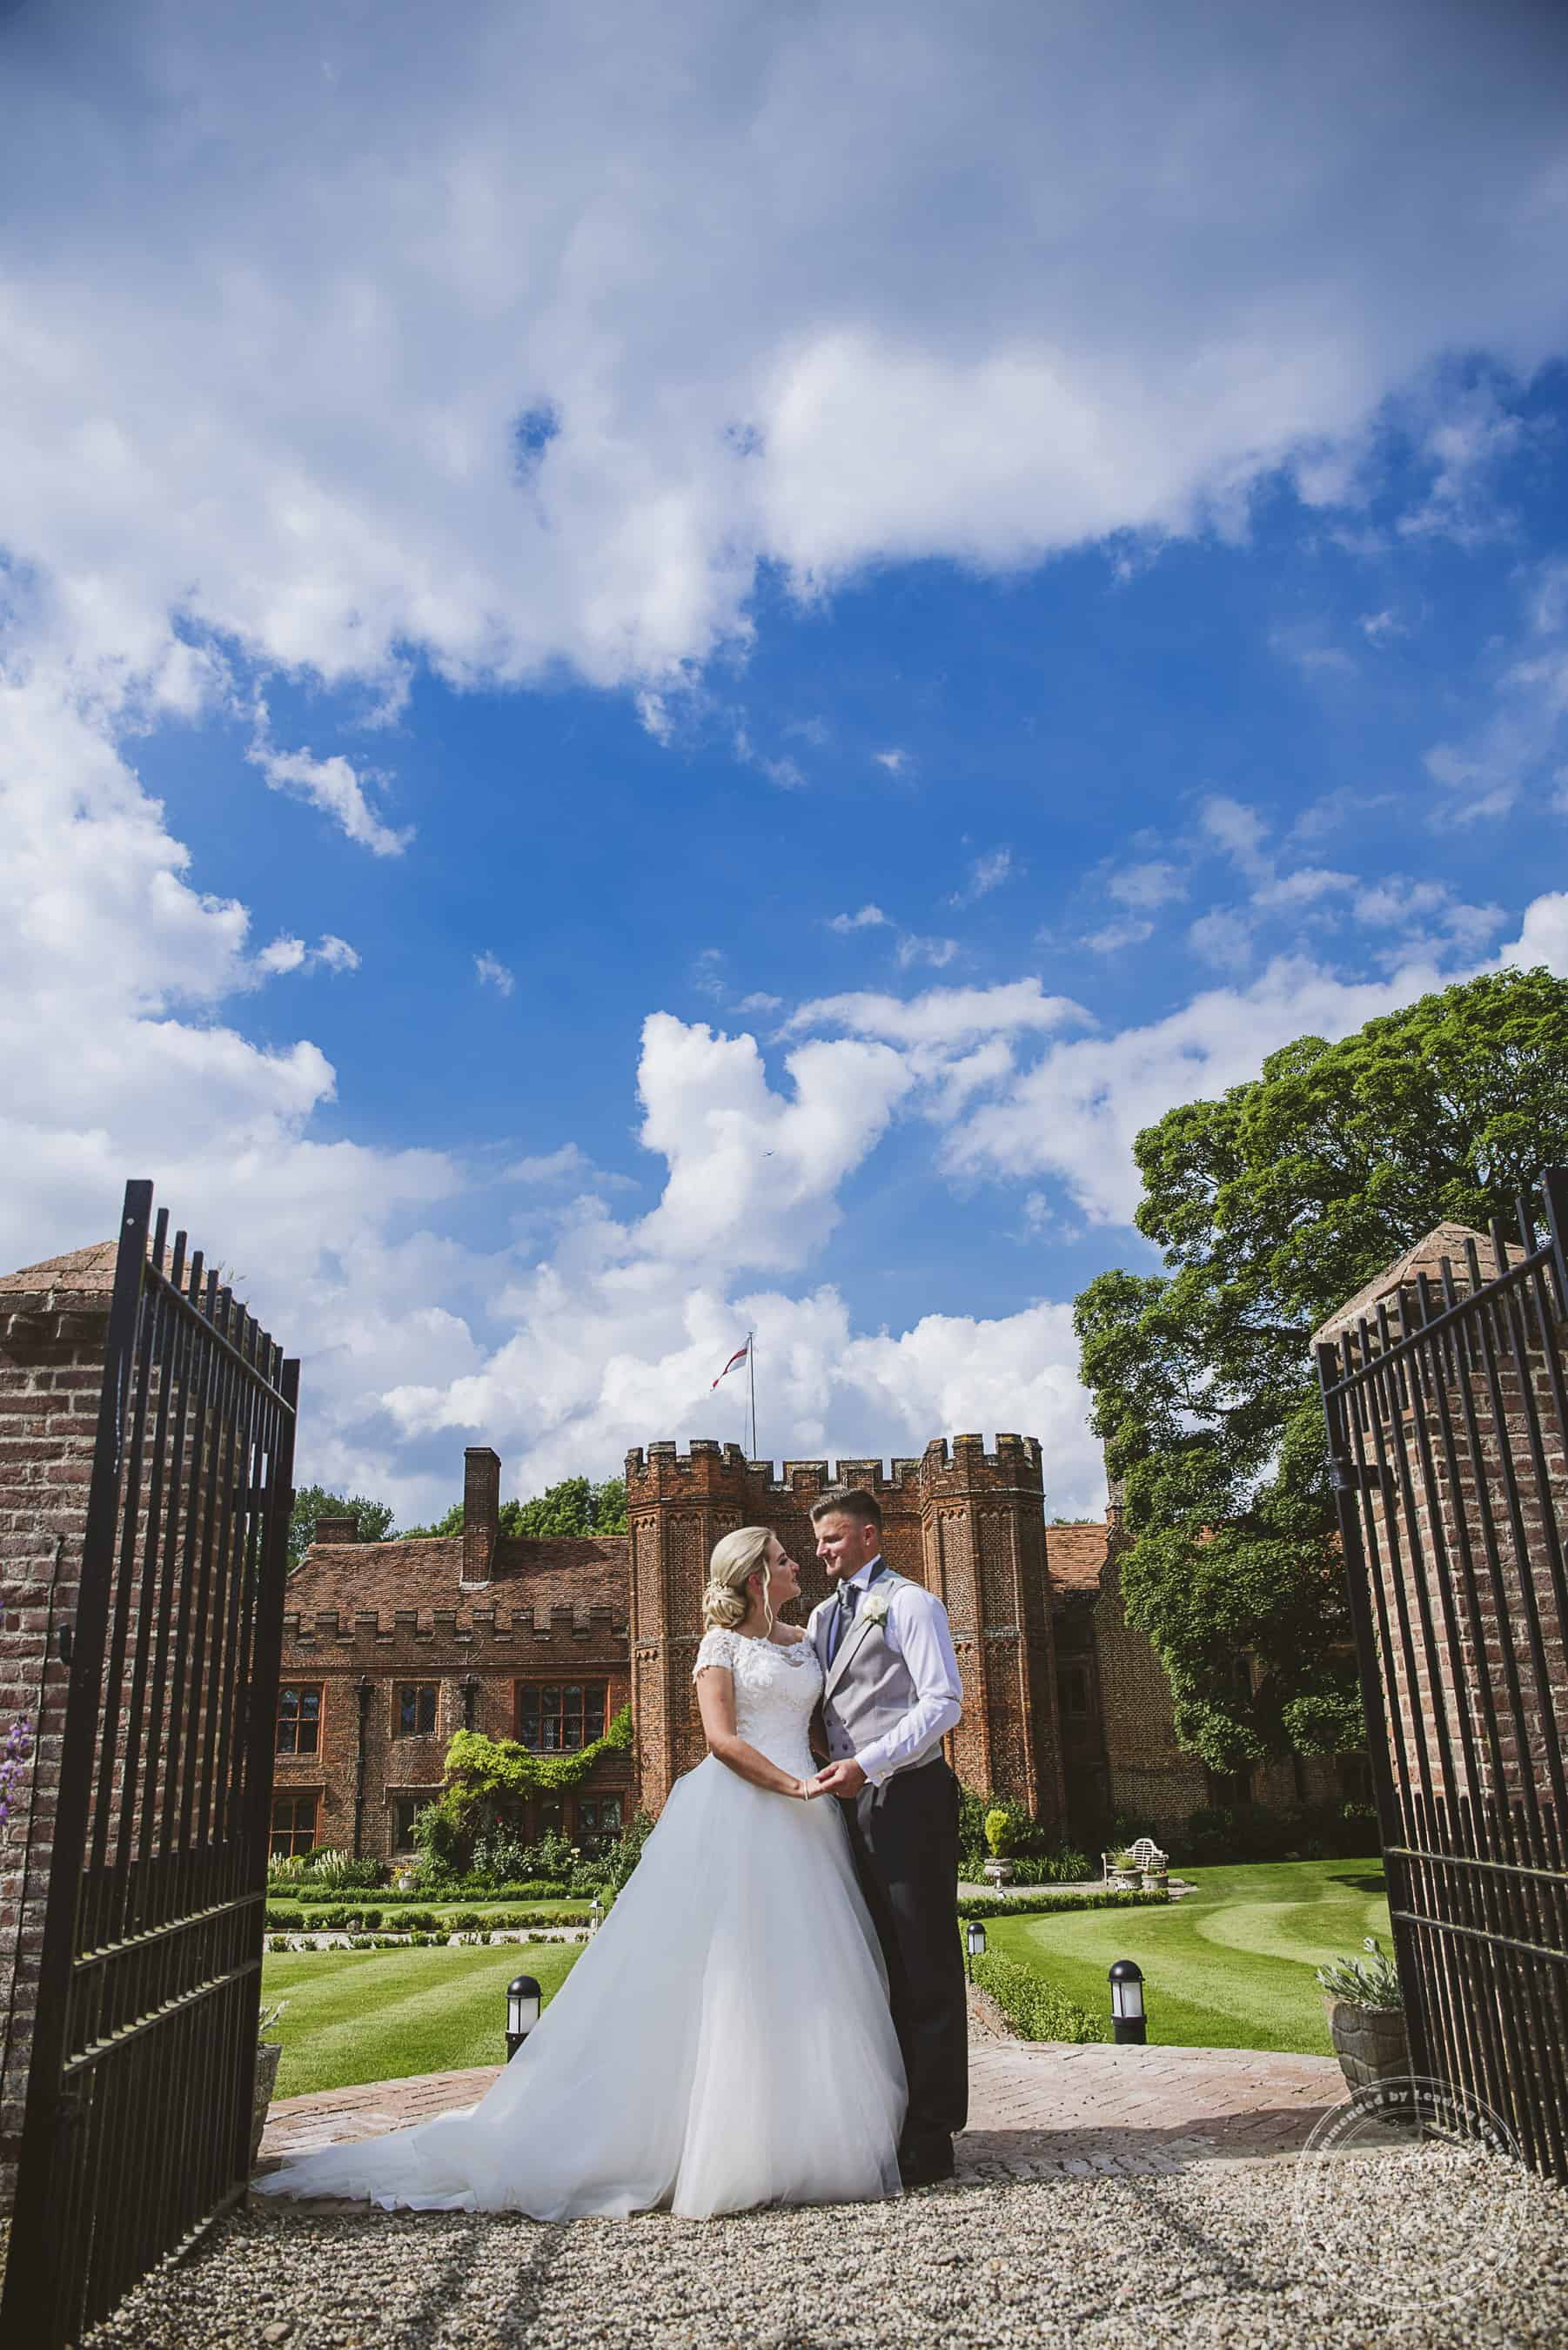 030618 Leez Priory Wedding Photography Lavenham Photographic 091